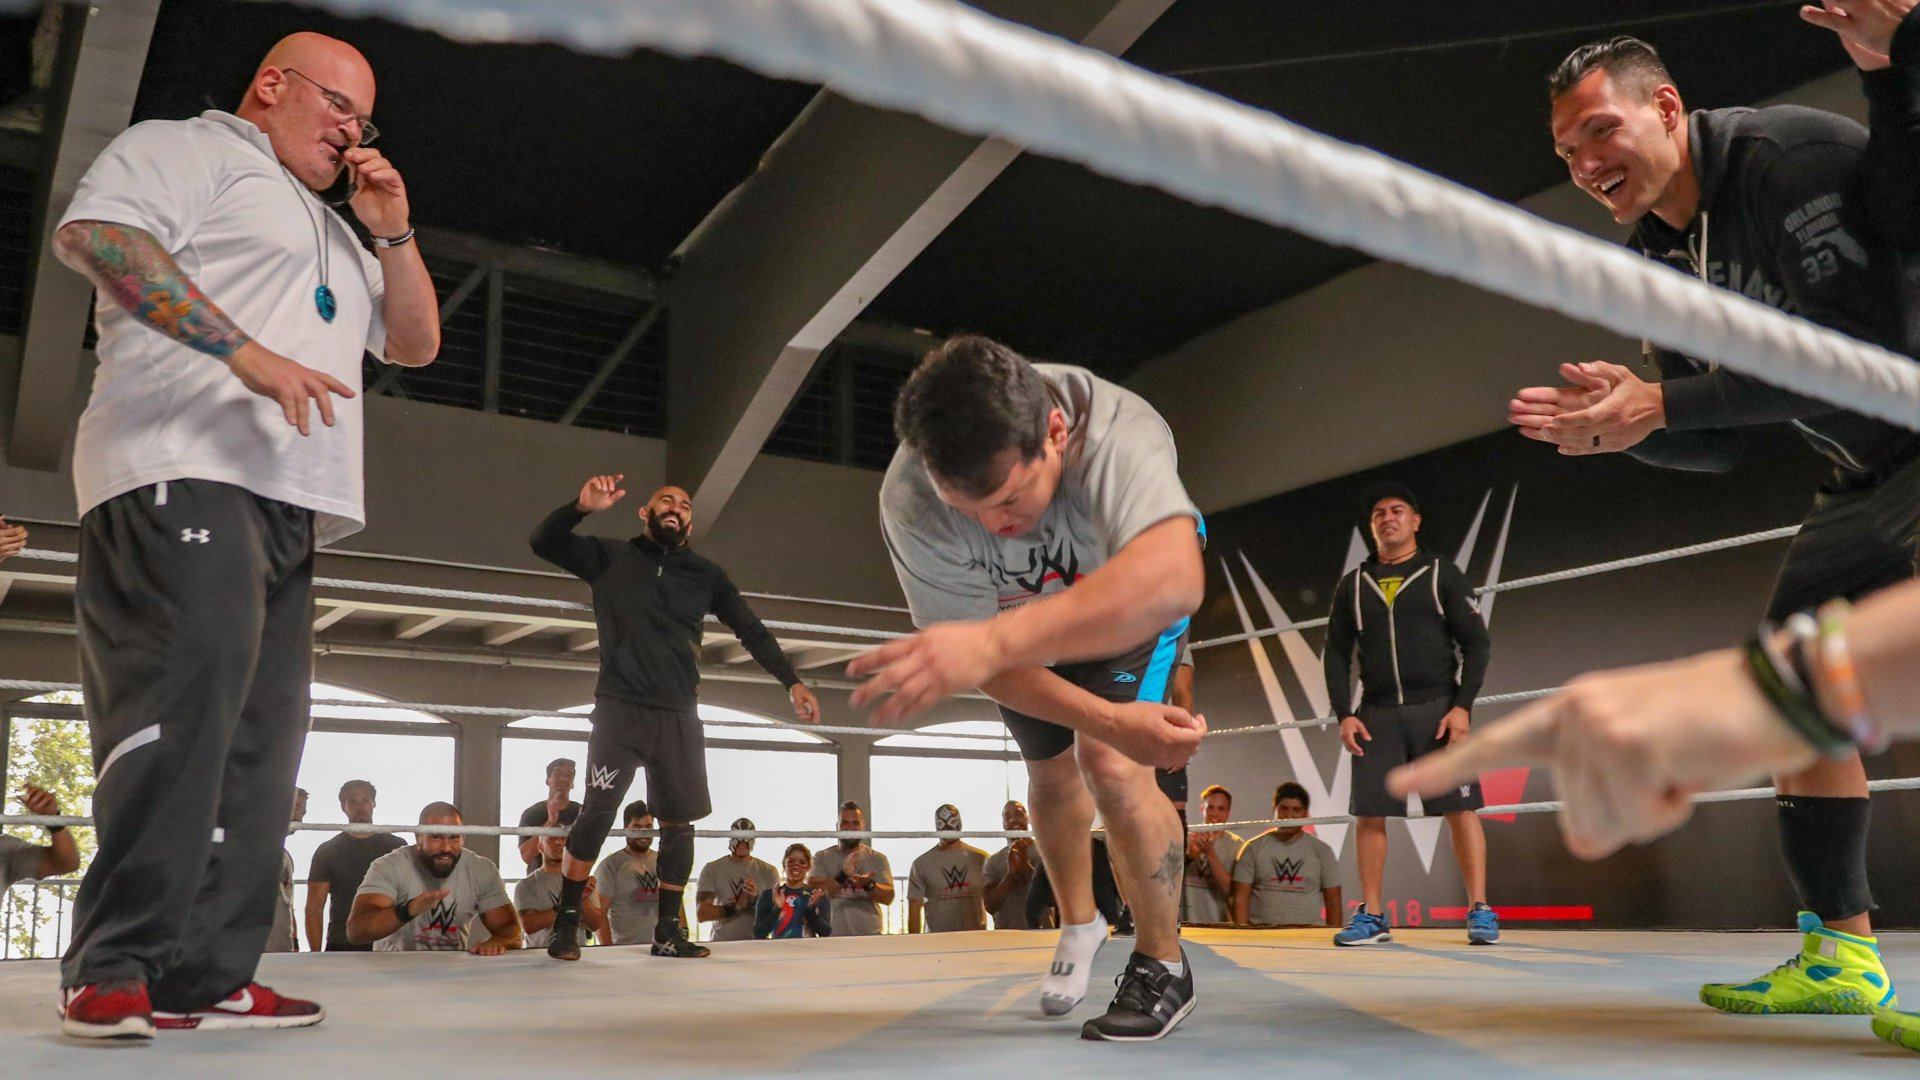 WWE Performance Center Head Coach Matt Bloom and the NXT Superstars cheer on Ricky Marvin, one of the tryout's most experienced and best known luchadores, as he completes a roll despite losing his right shoe.